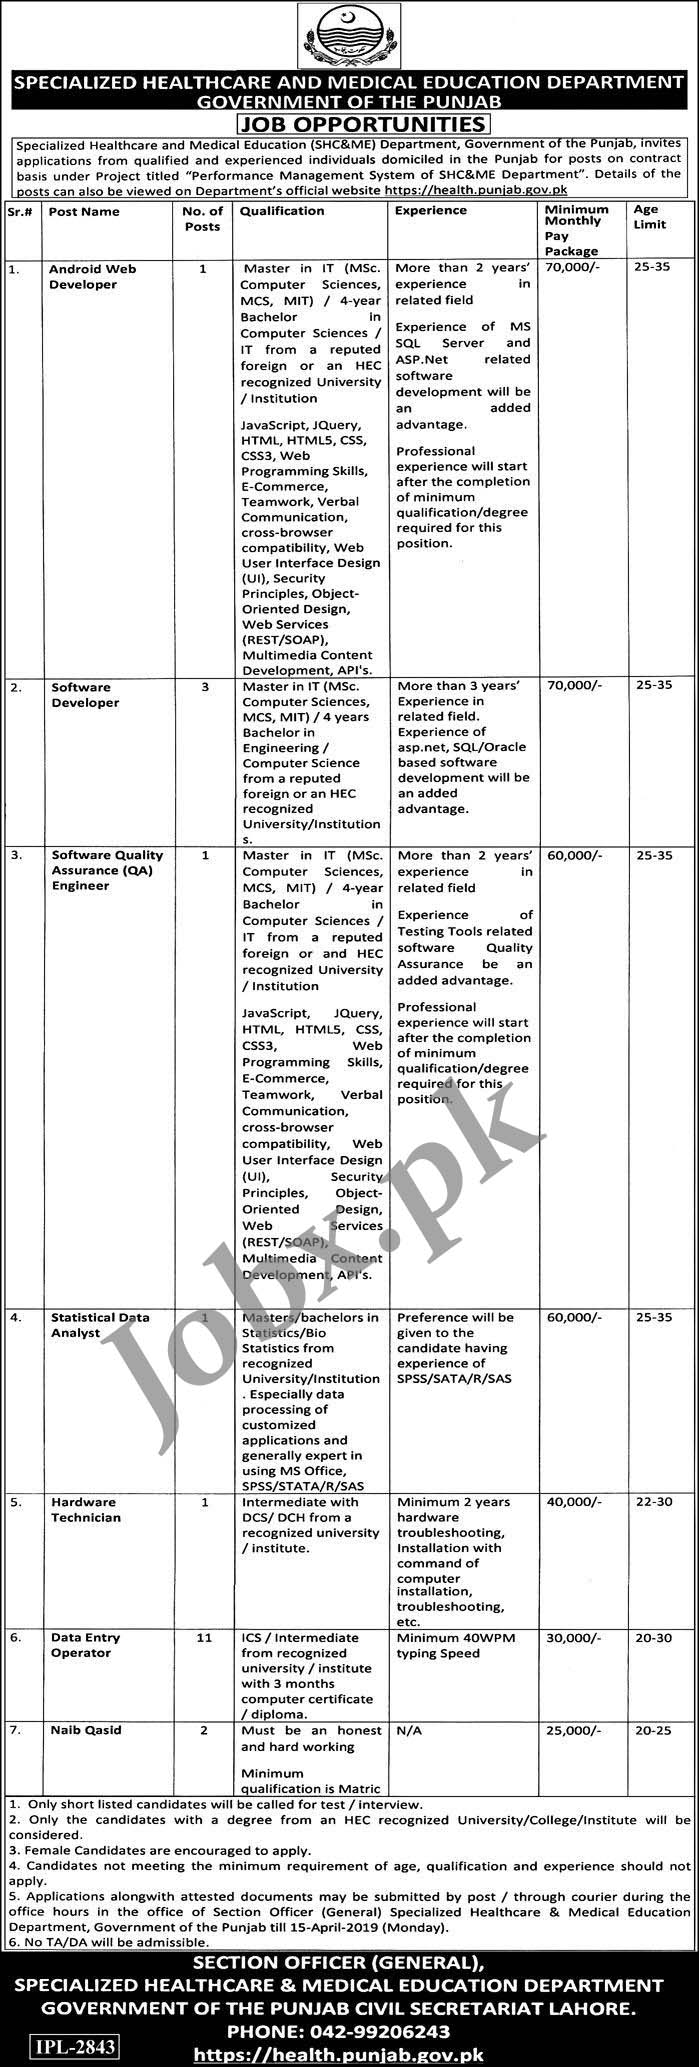 Specialize Healthcare and Medical Education Govt of Punjab 28 March 2019